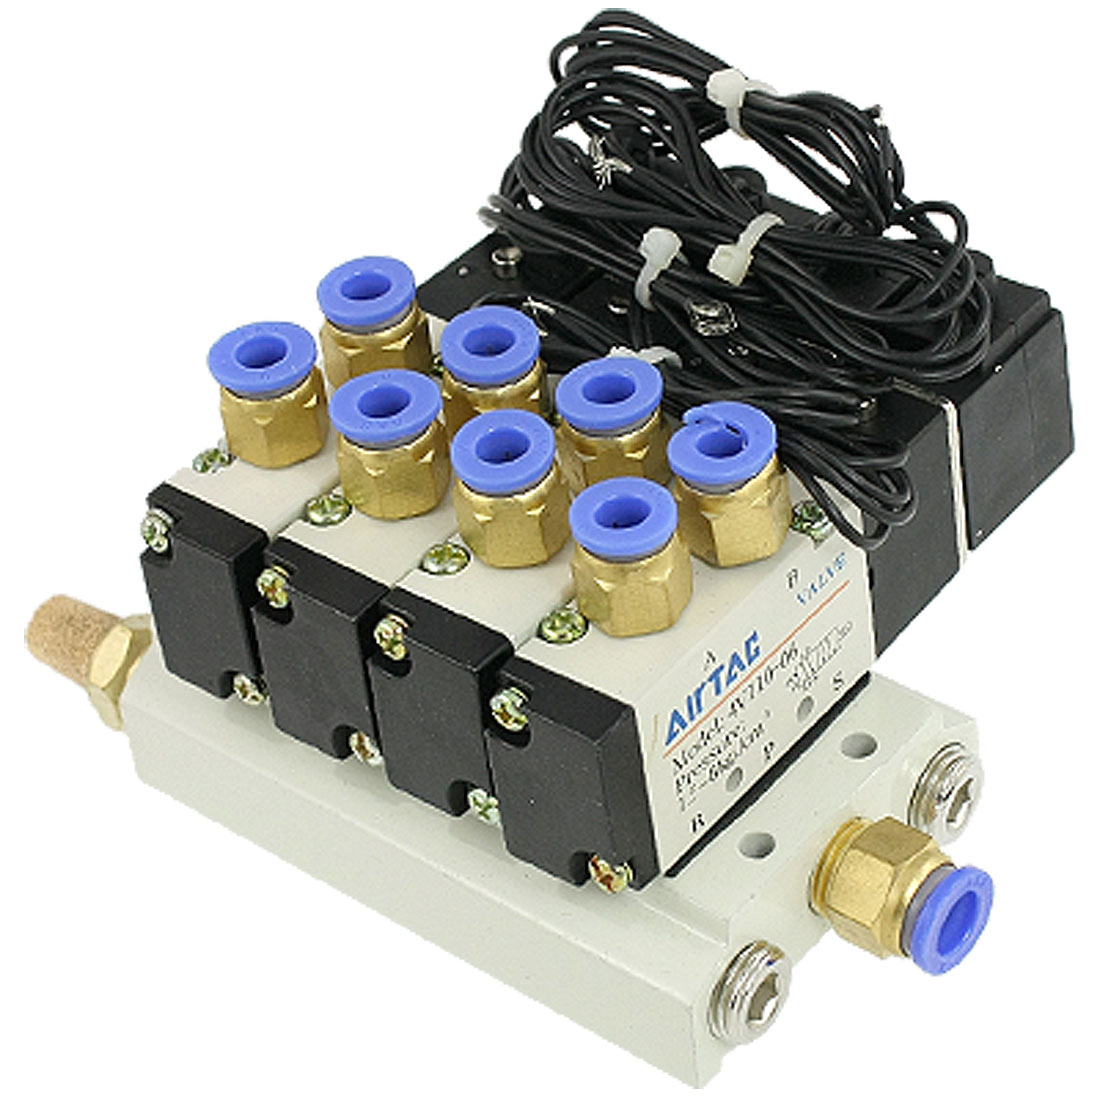 DC 12V Pneumatic Quadruple Solenoid Valve w Base Push In Connectors Silencers